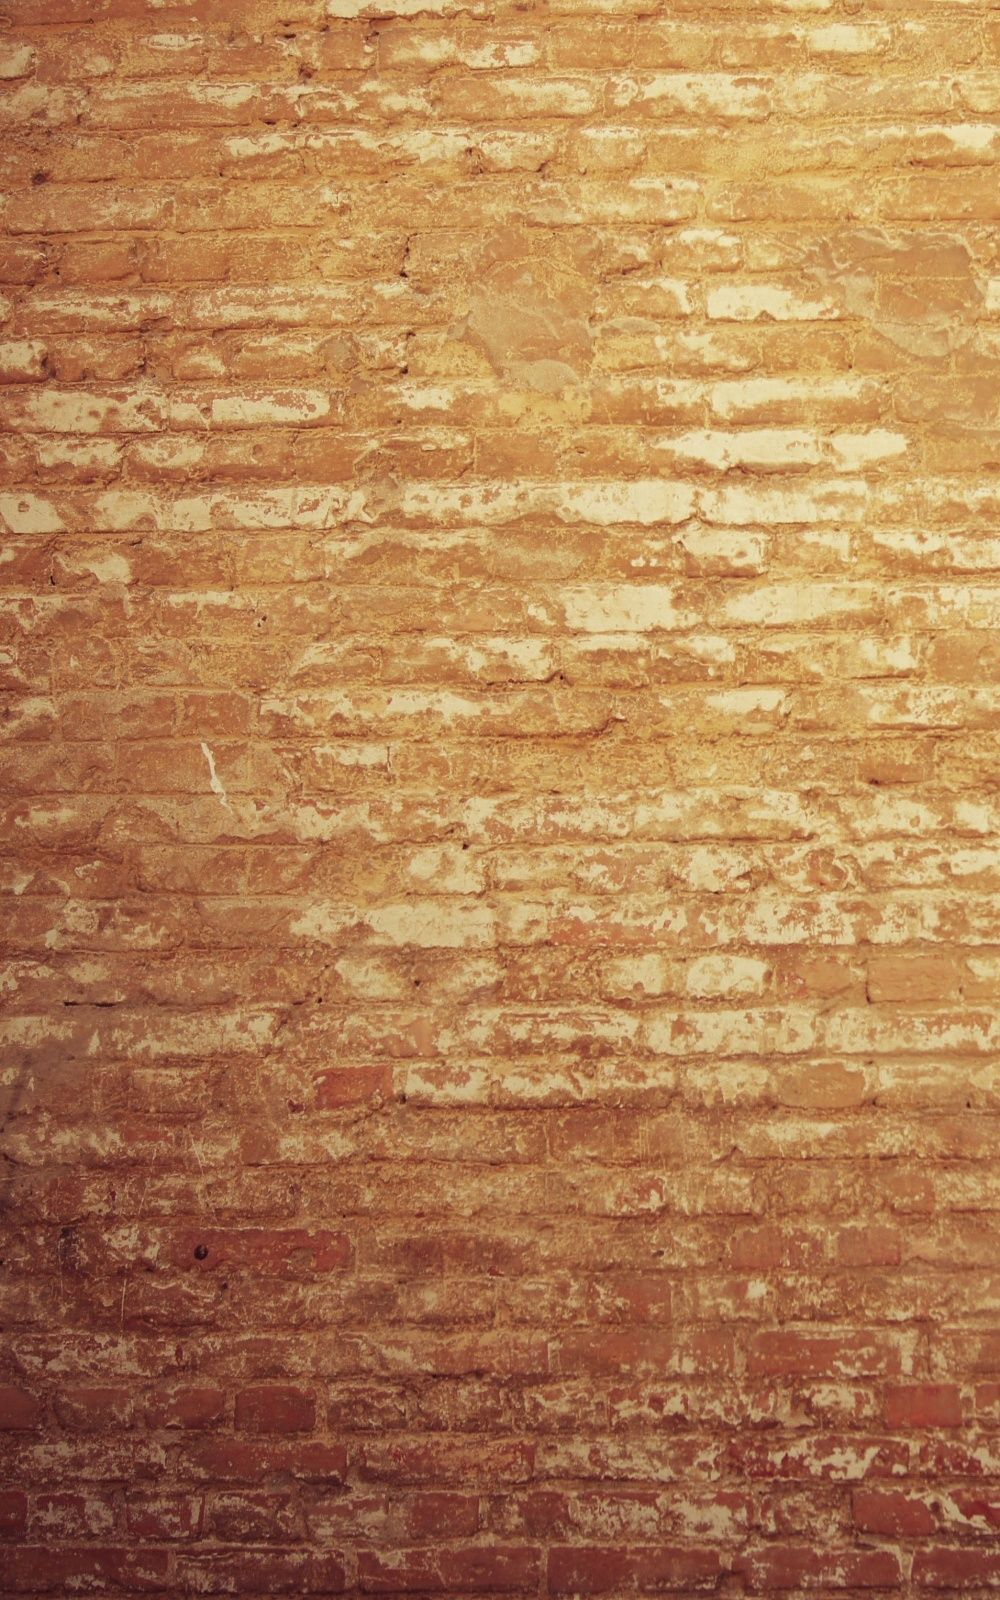 1000x1600 Brick Wall Pattern iPhone 6 Plus HD Wallpaper HD - Free ...